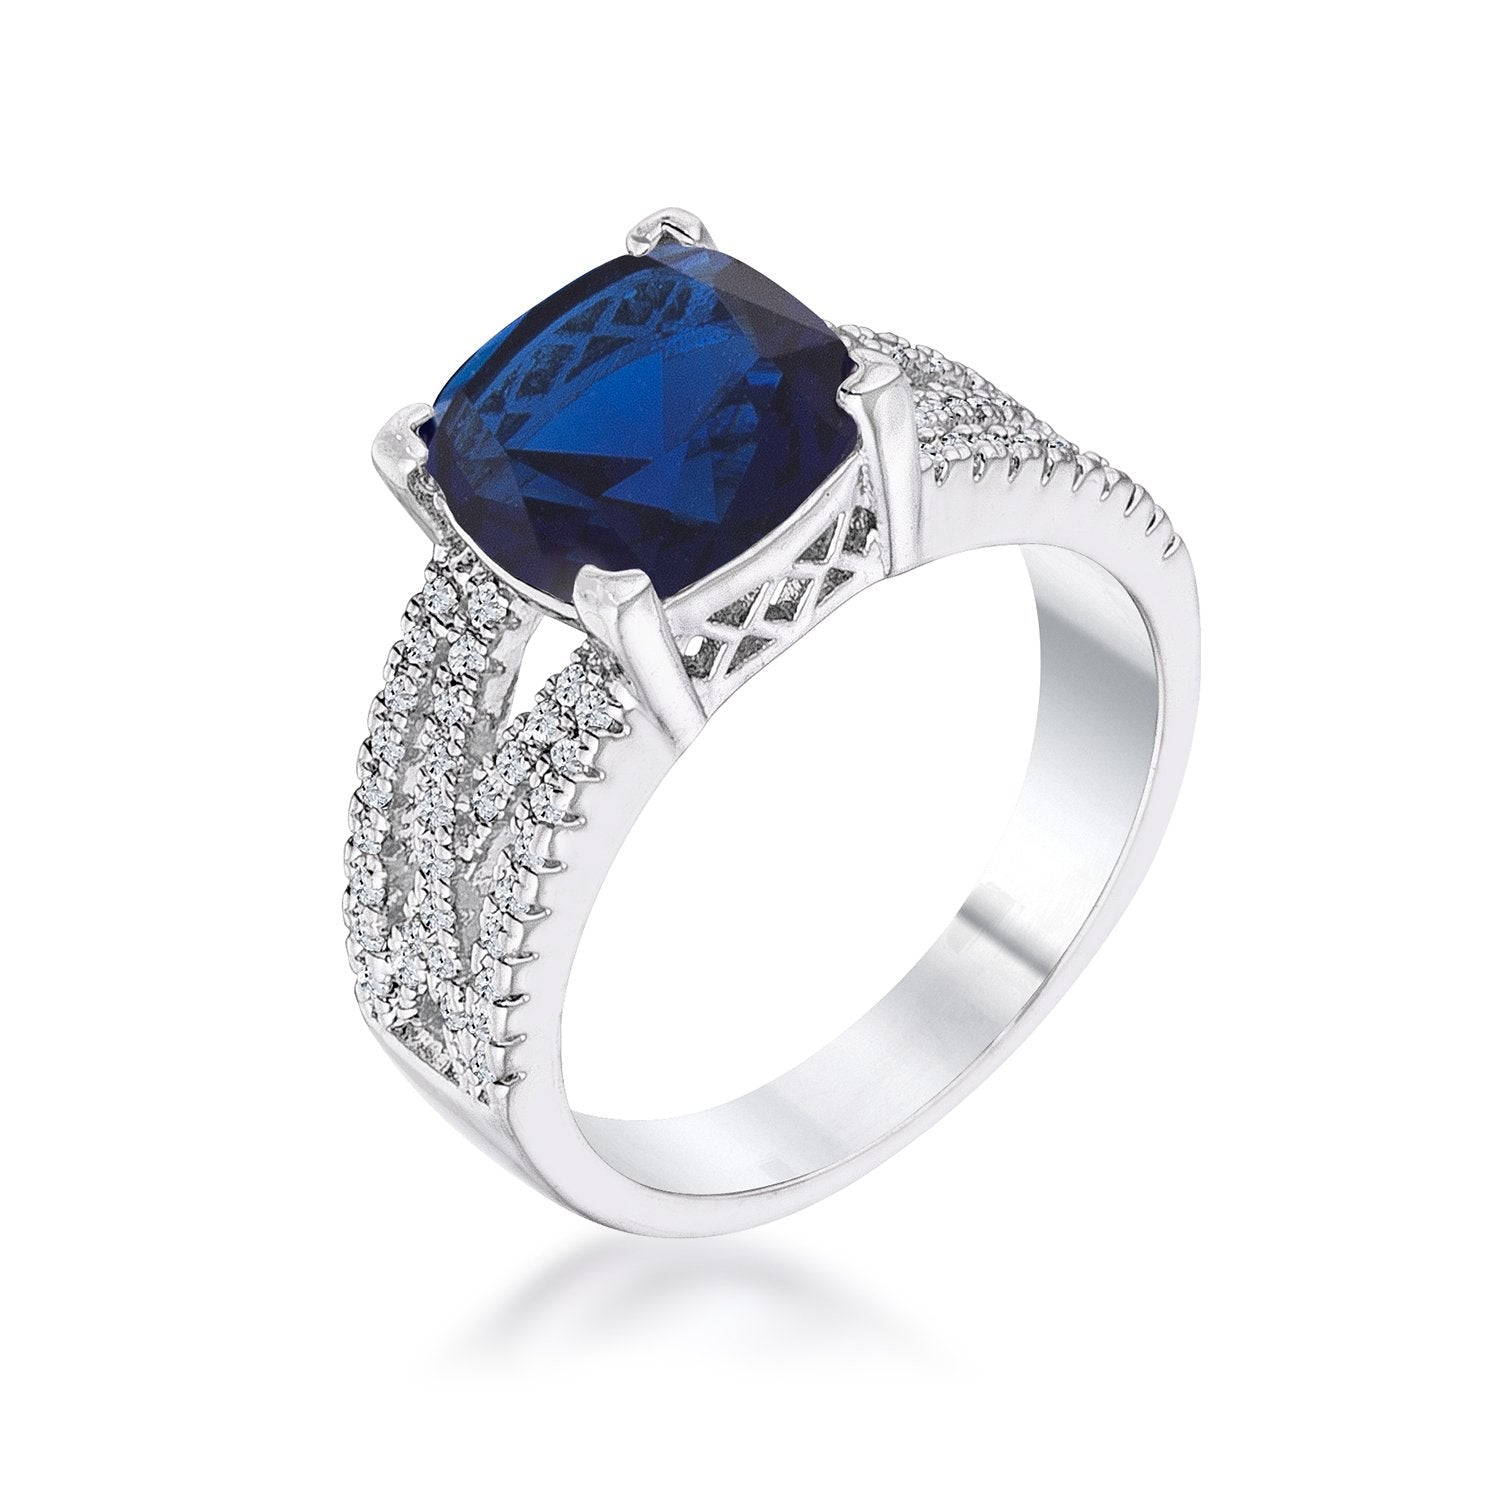 3ct Elegant Silvertone Criss-Cross Sapphire Blue CZ Engagement Ring - Opulent Lifestyle